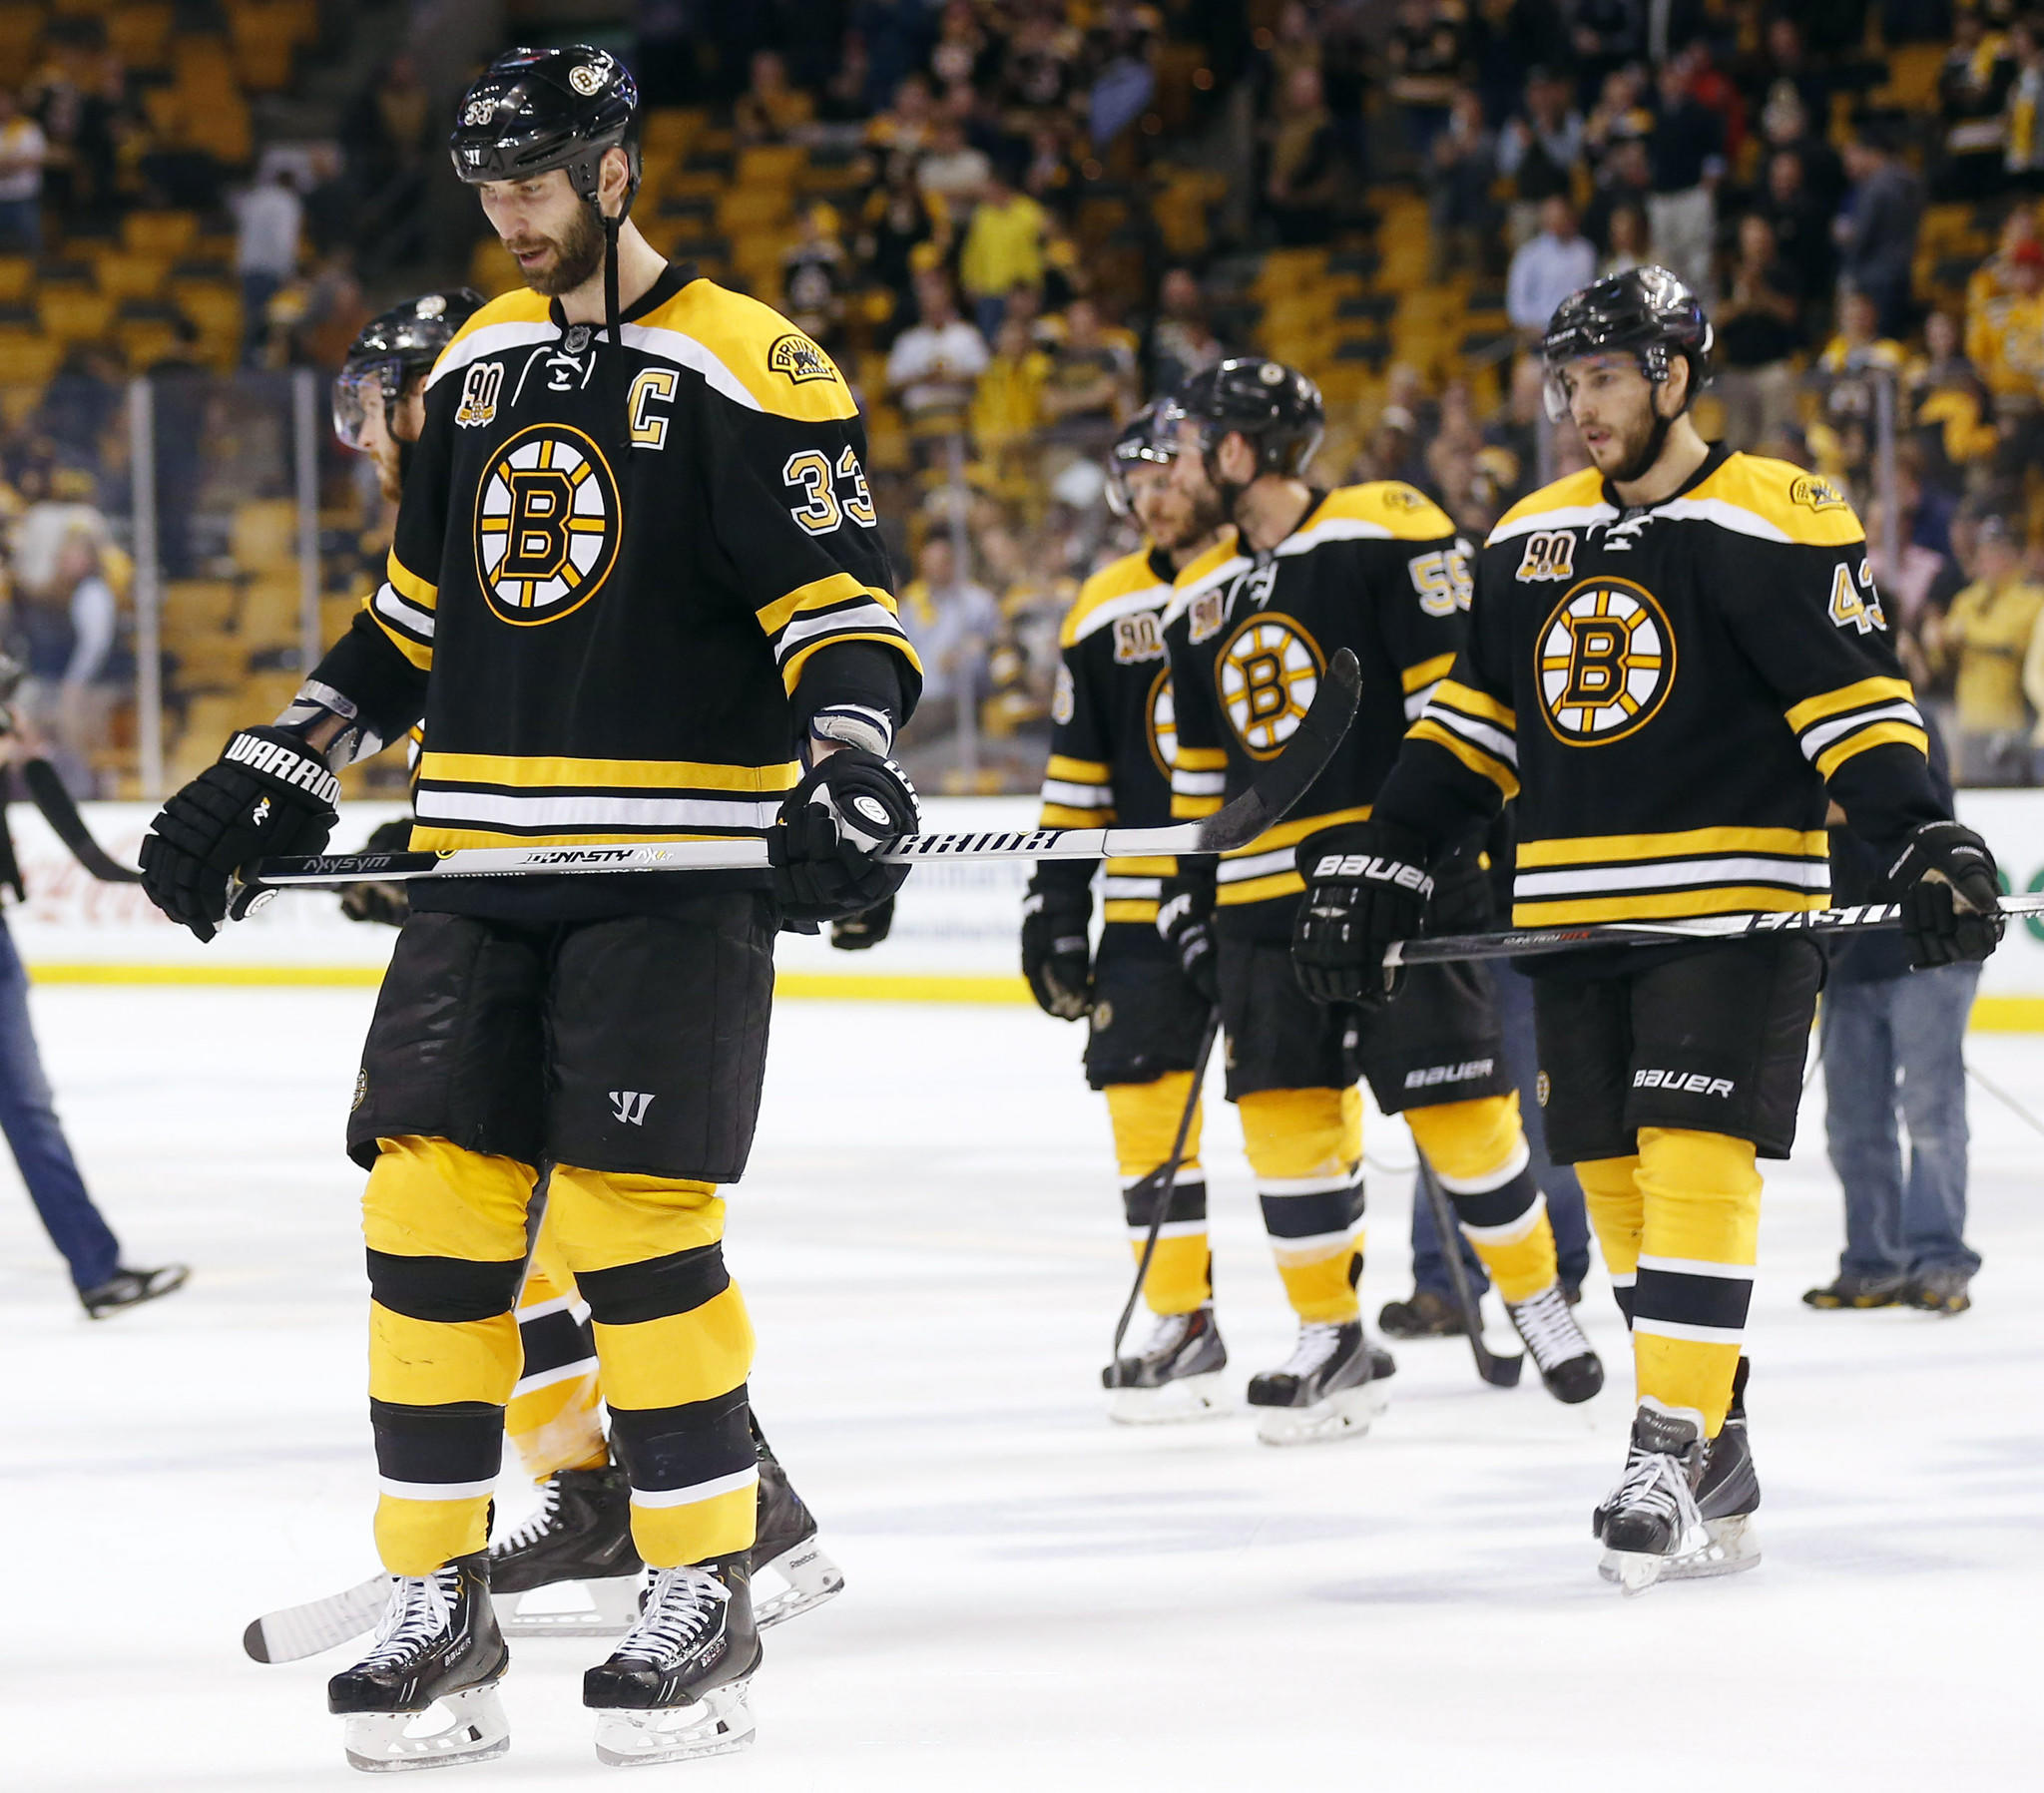 Jeff Jacobs Column: Bruins Falls To Montreal In Game 7